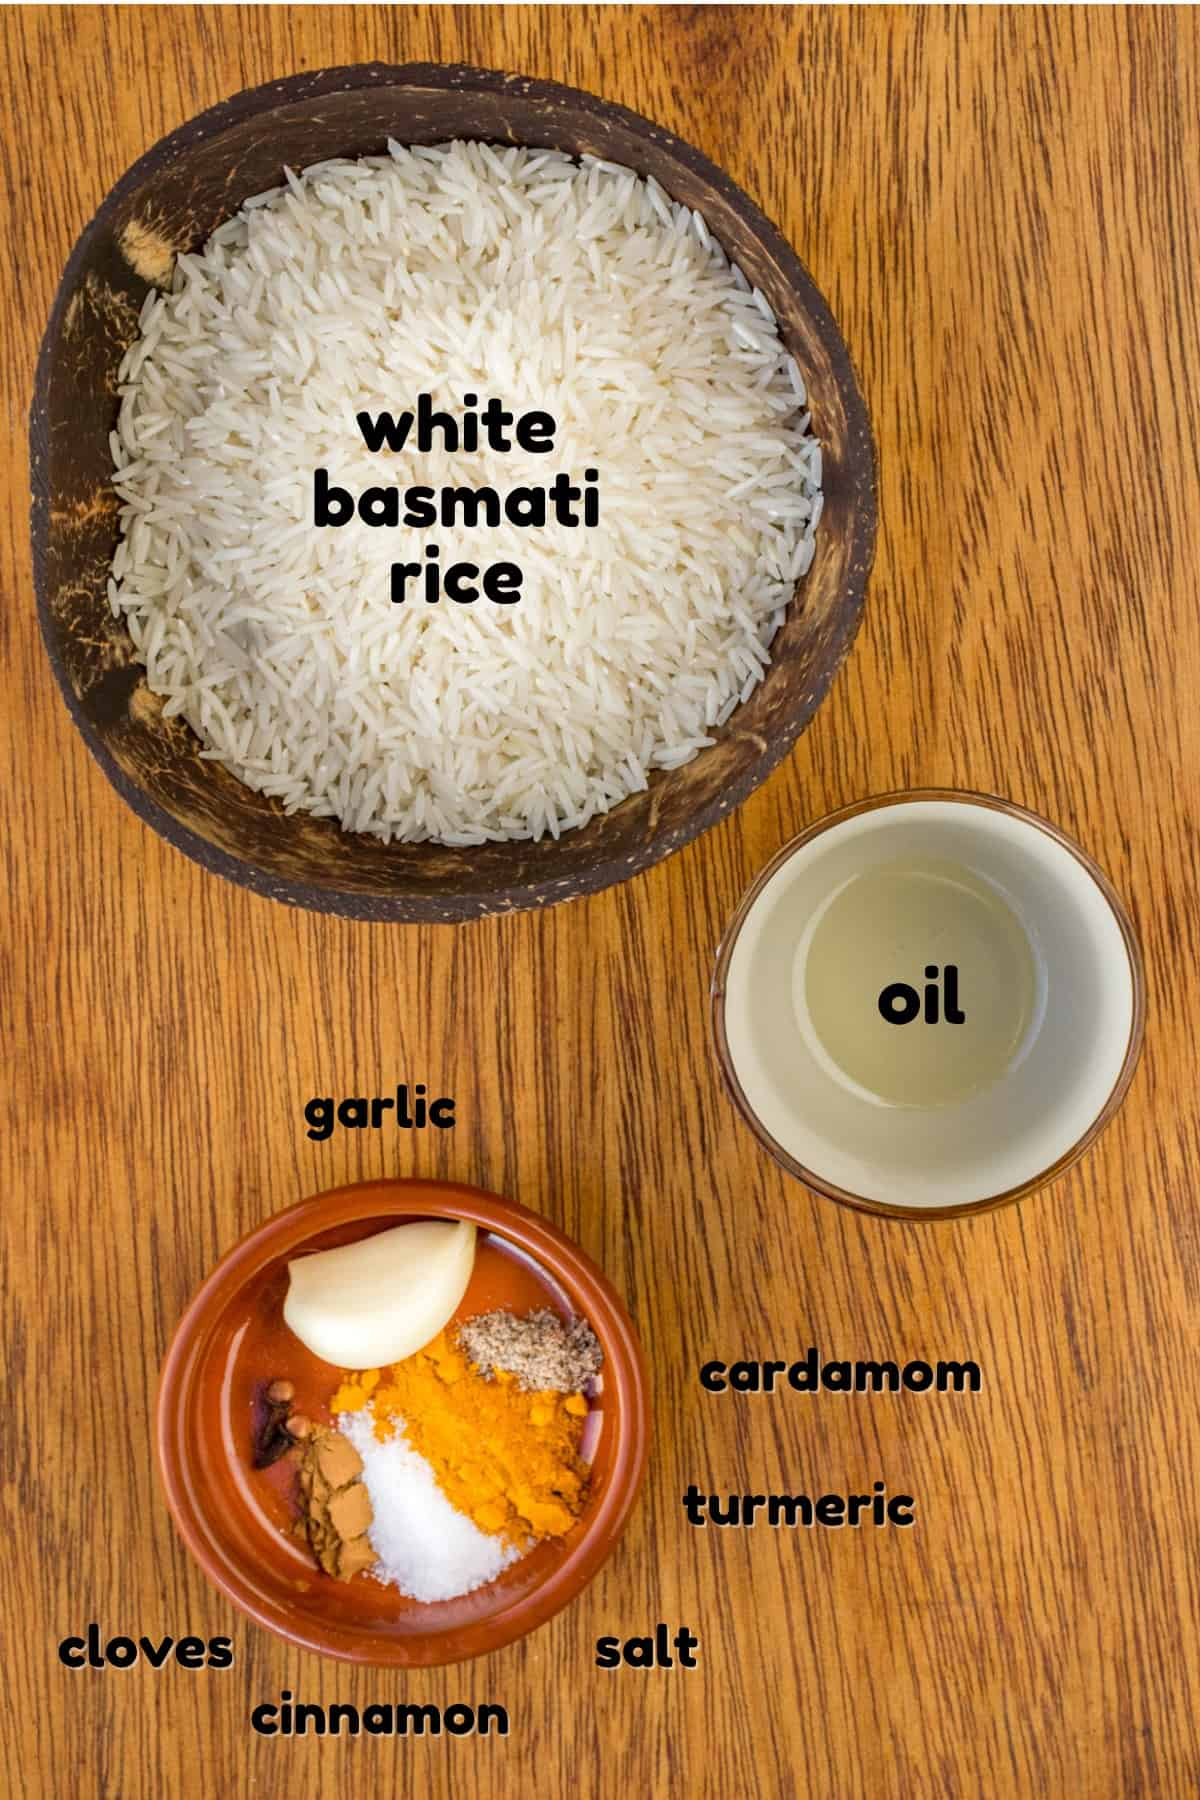 A coconut bowl of white rice, a small dish of oil, and a terracotta pot containing garlic, cardamom, turmeric, salt, cinnamon and cloves.